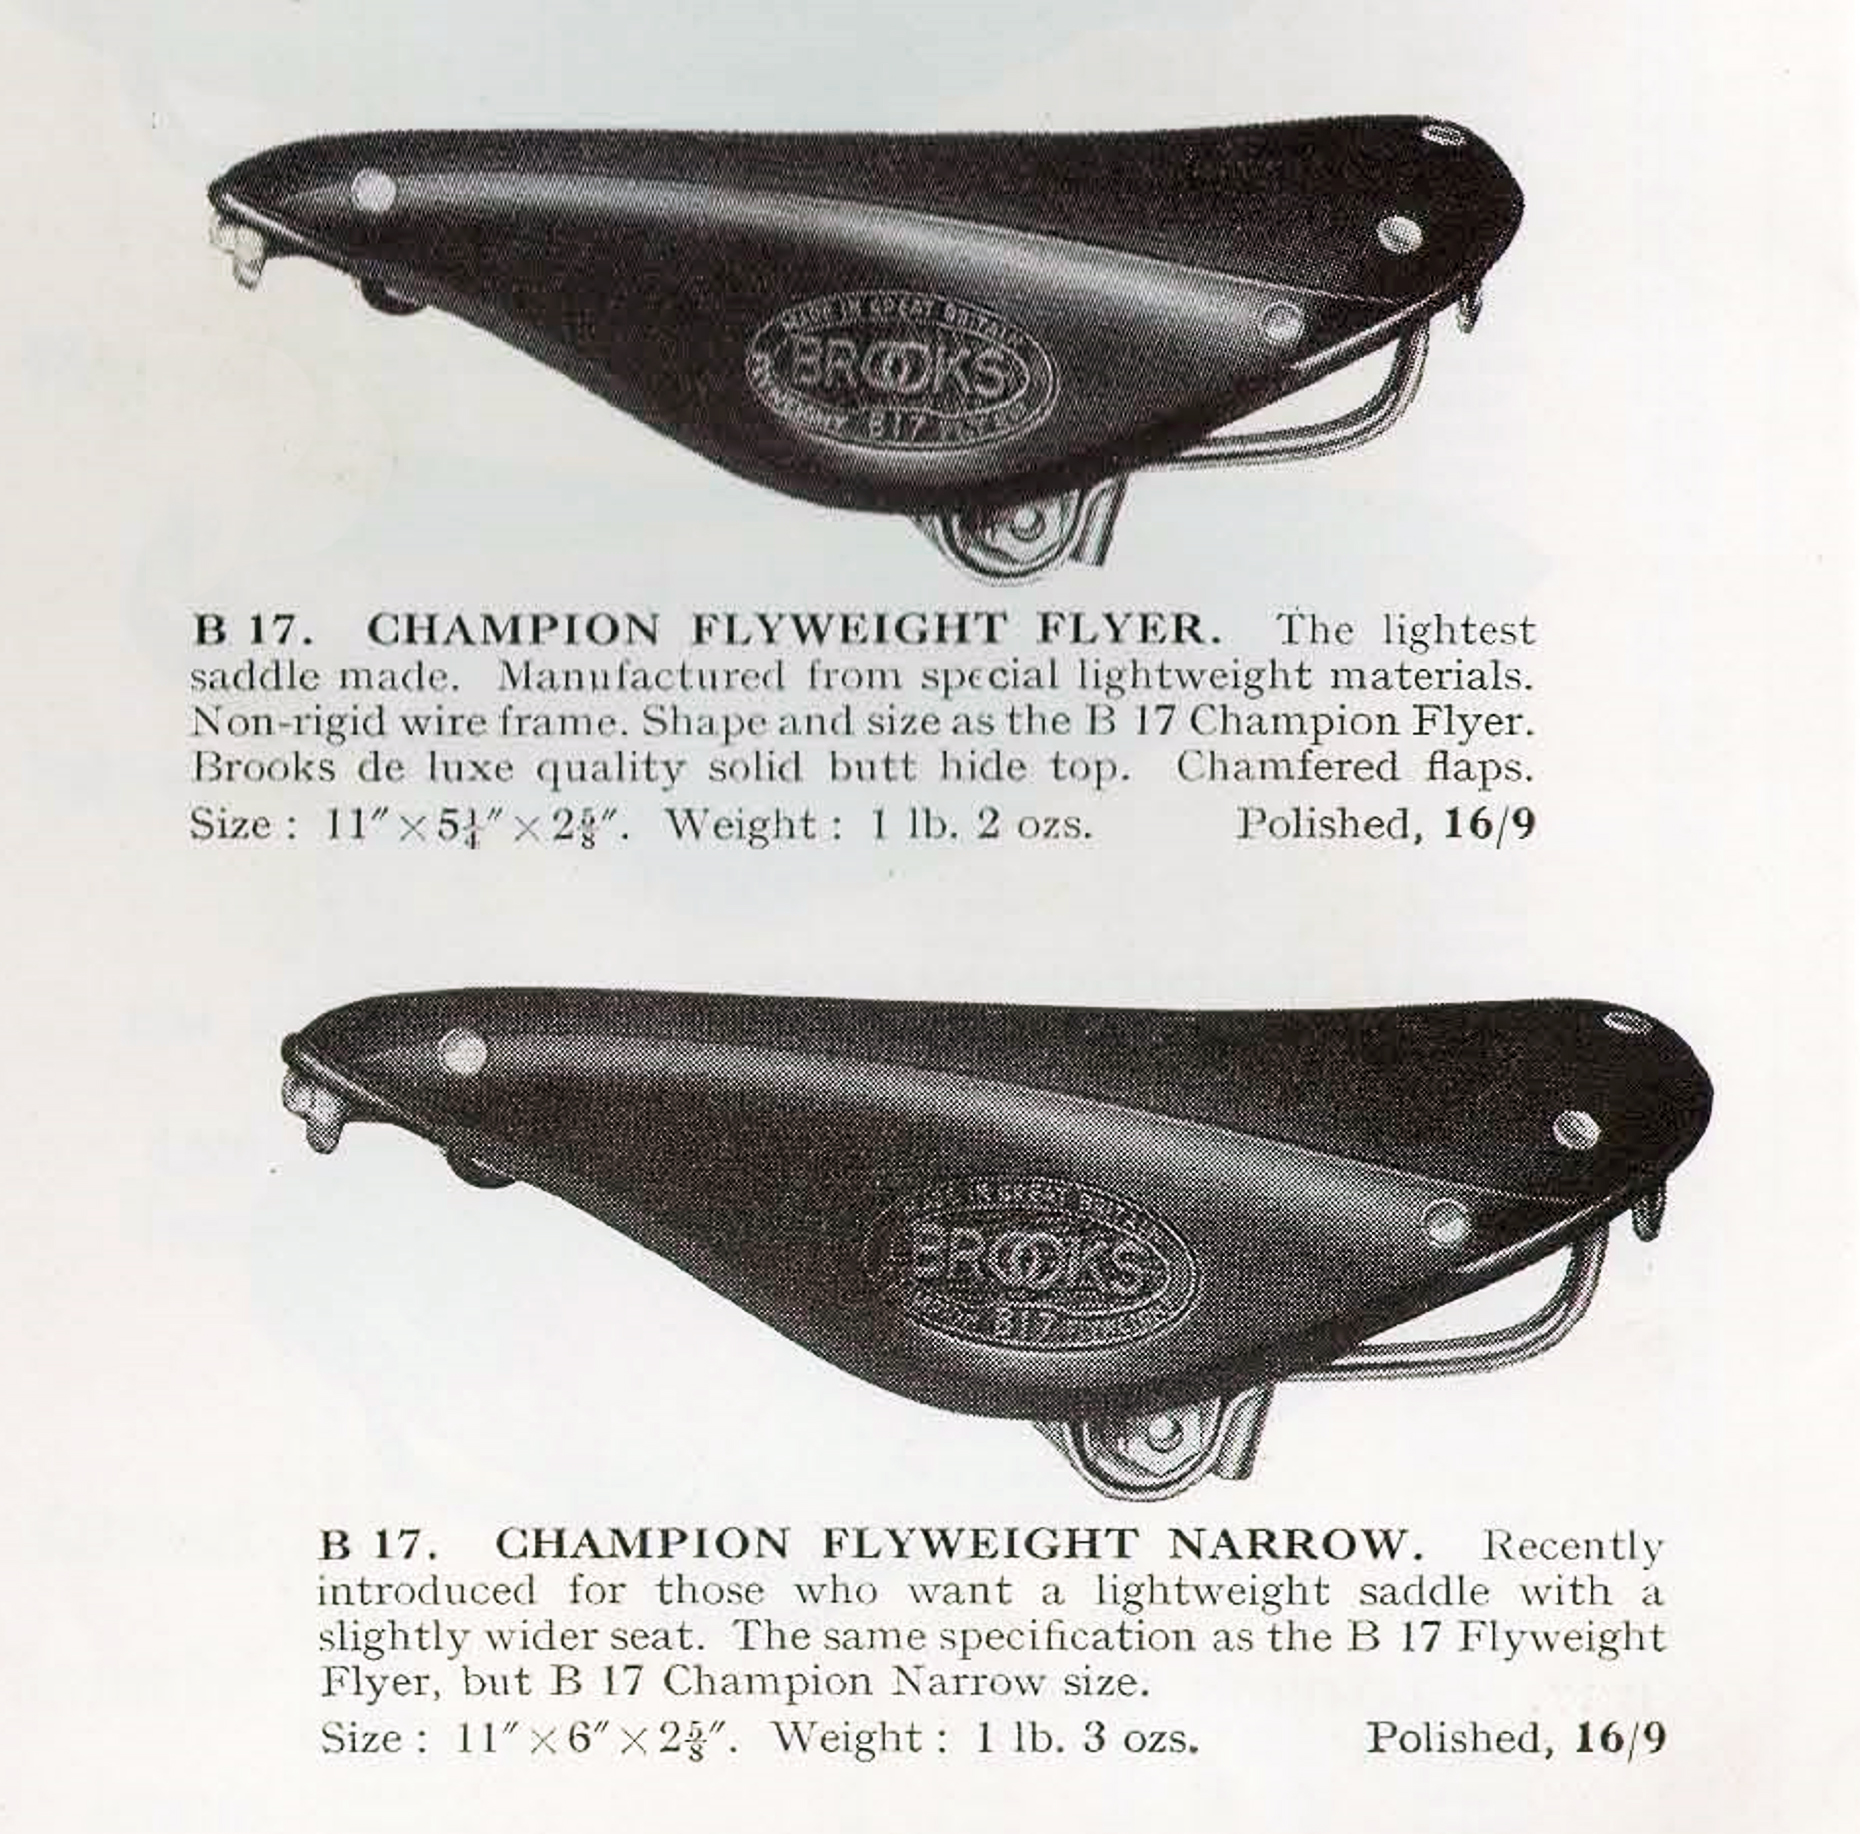 ebykr-brooks-b-17-champion-flyweight-saddles-1938-catalog-page-6